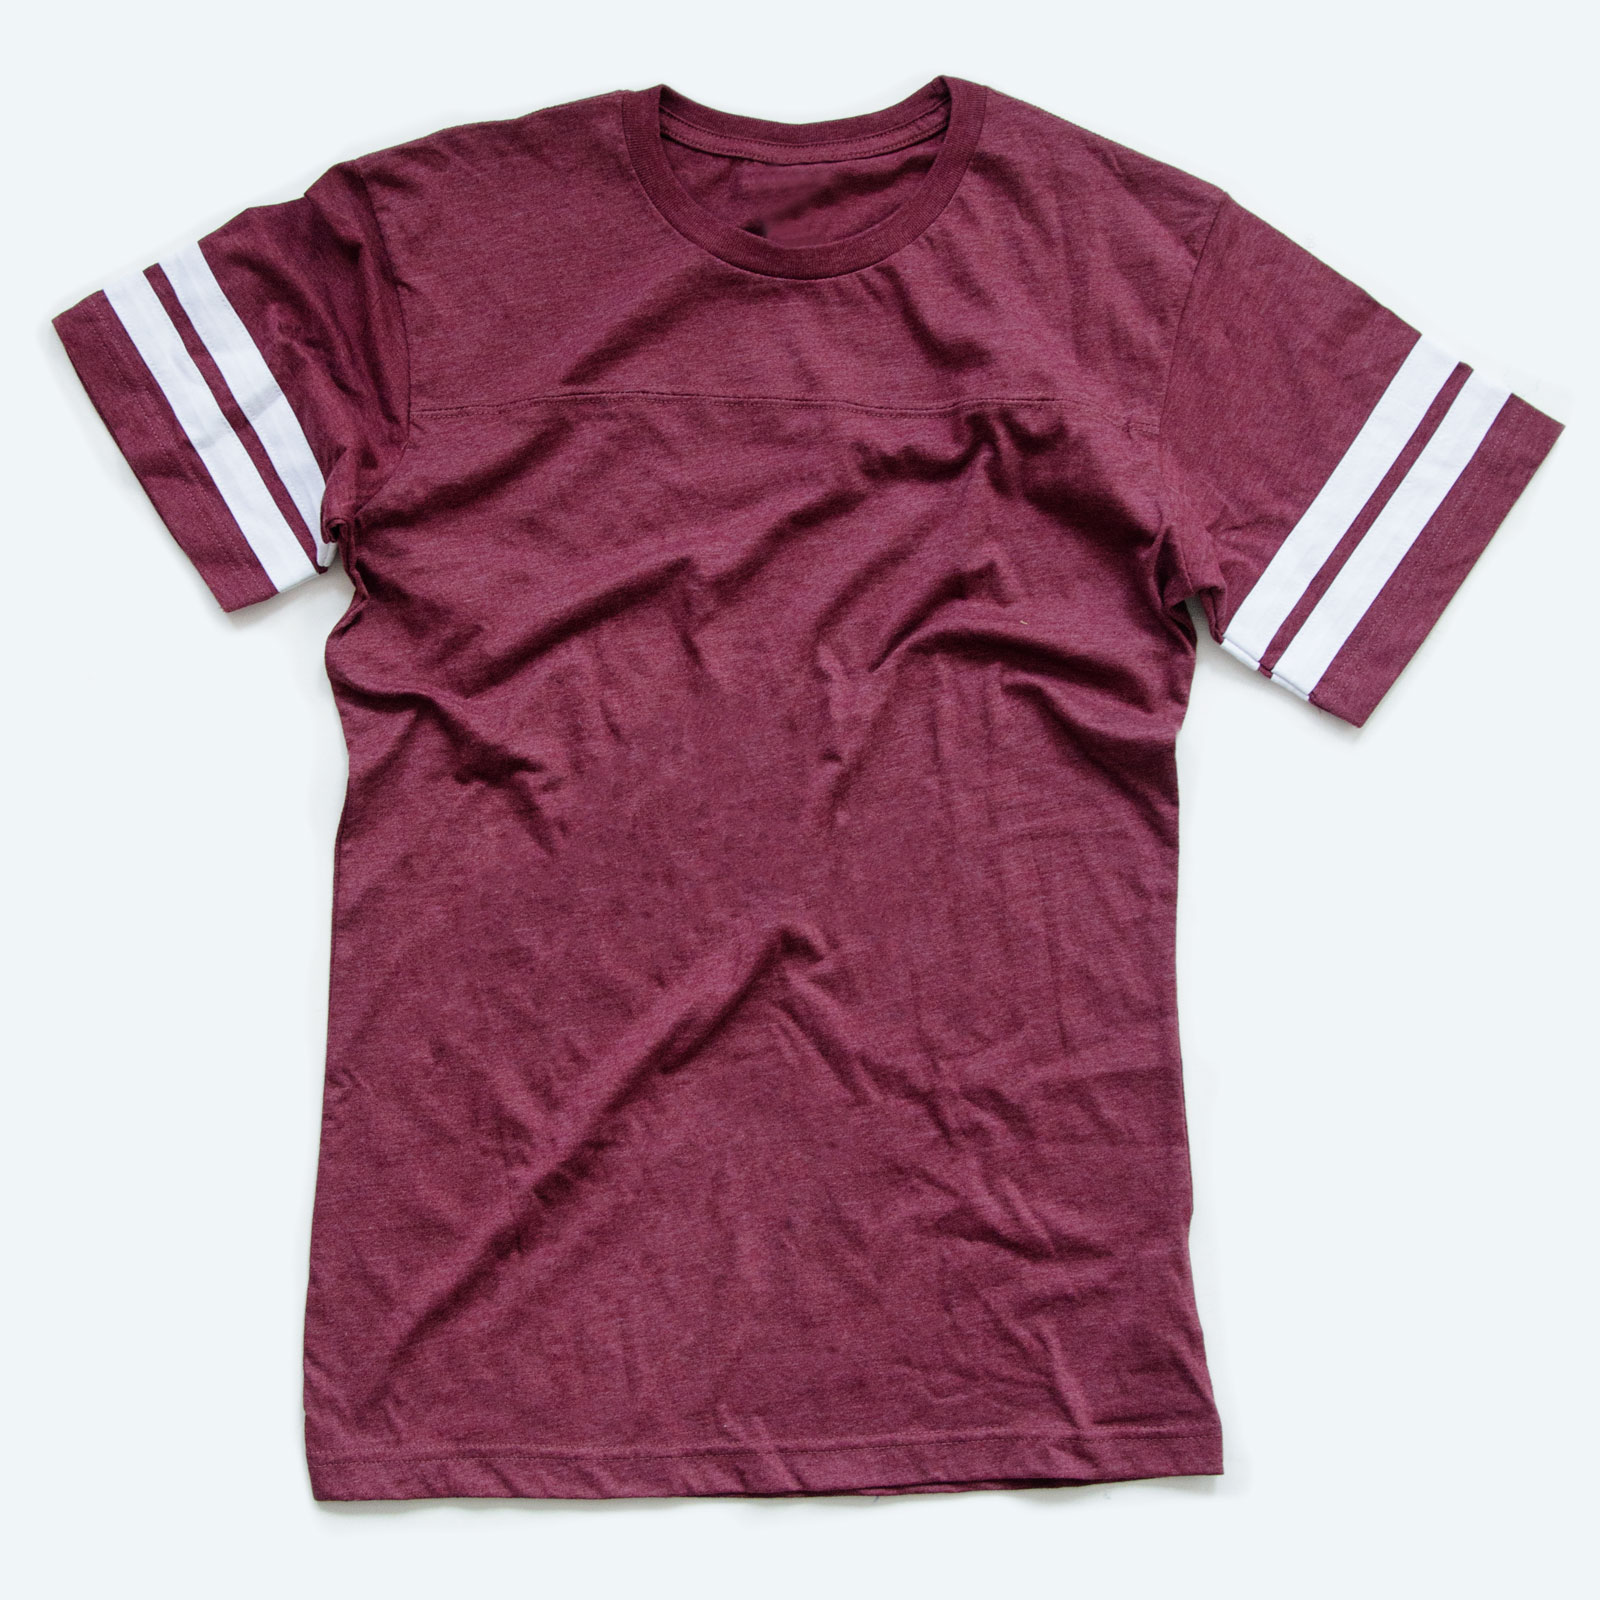 Football tees are one of the best styles of printed shirts that you can sell online.